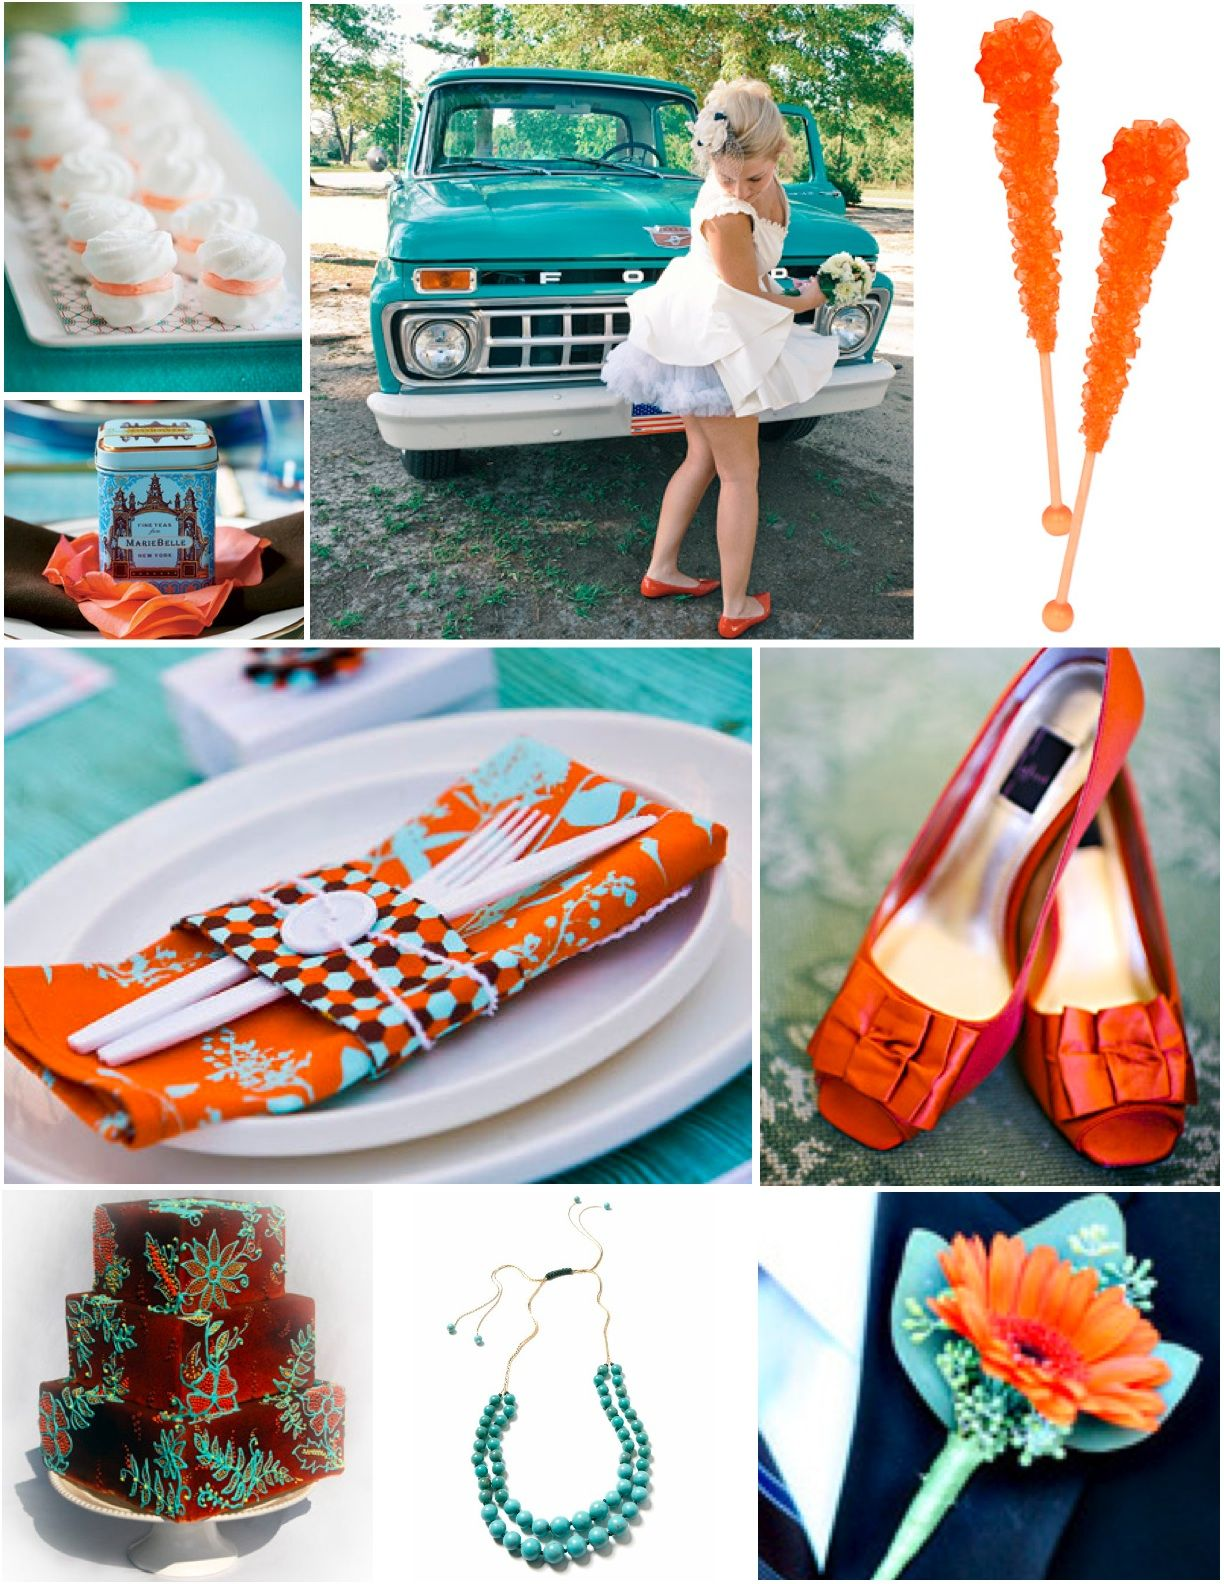 Orange Wedding Reception Pictures Burnt Turquoise And Chocolate Brown Weddingaces